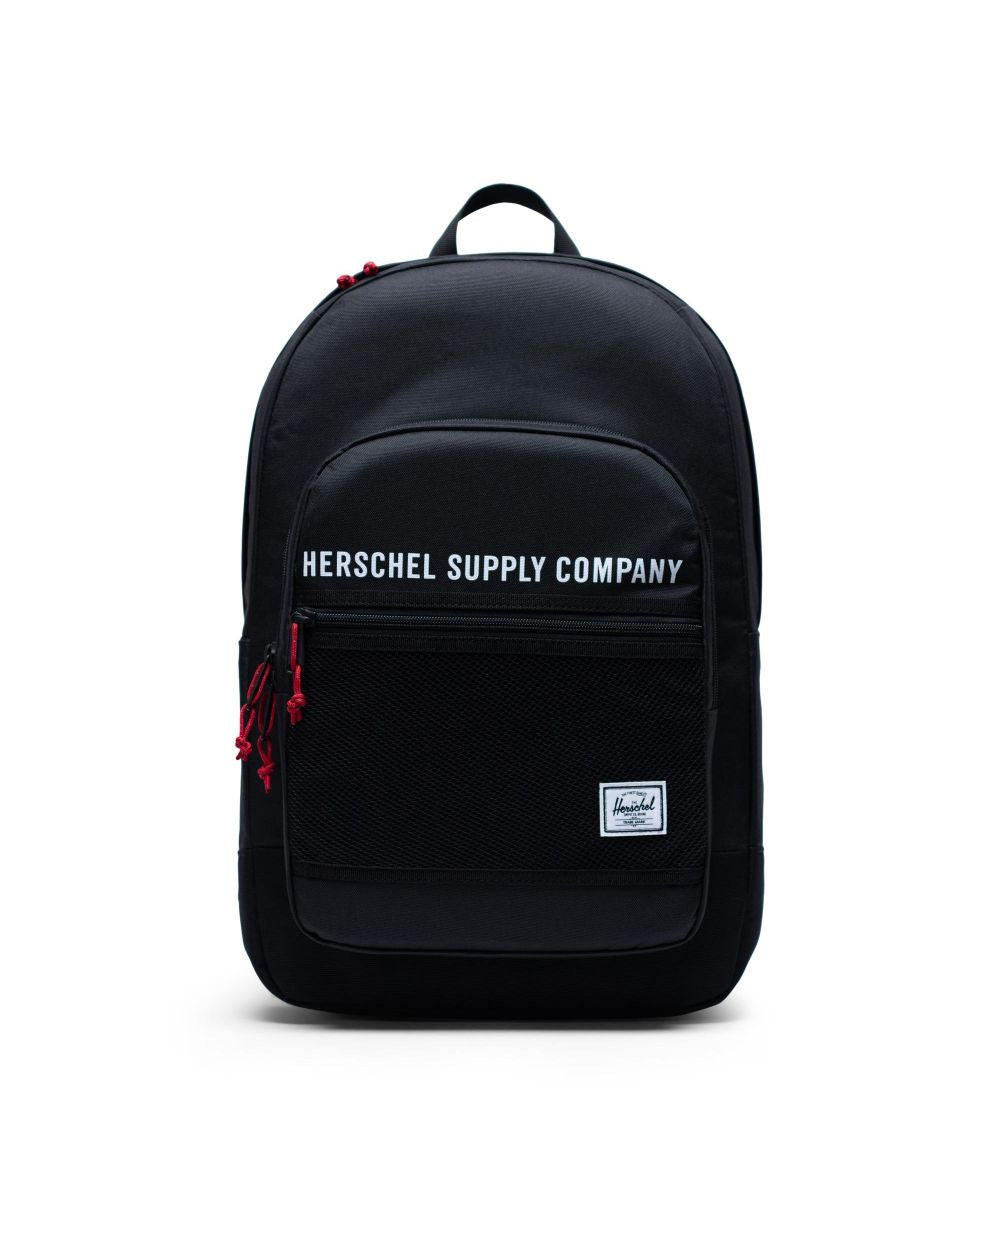 HERSCHEL / Backpack